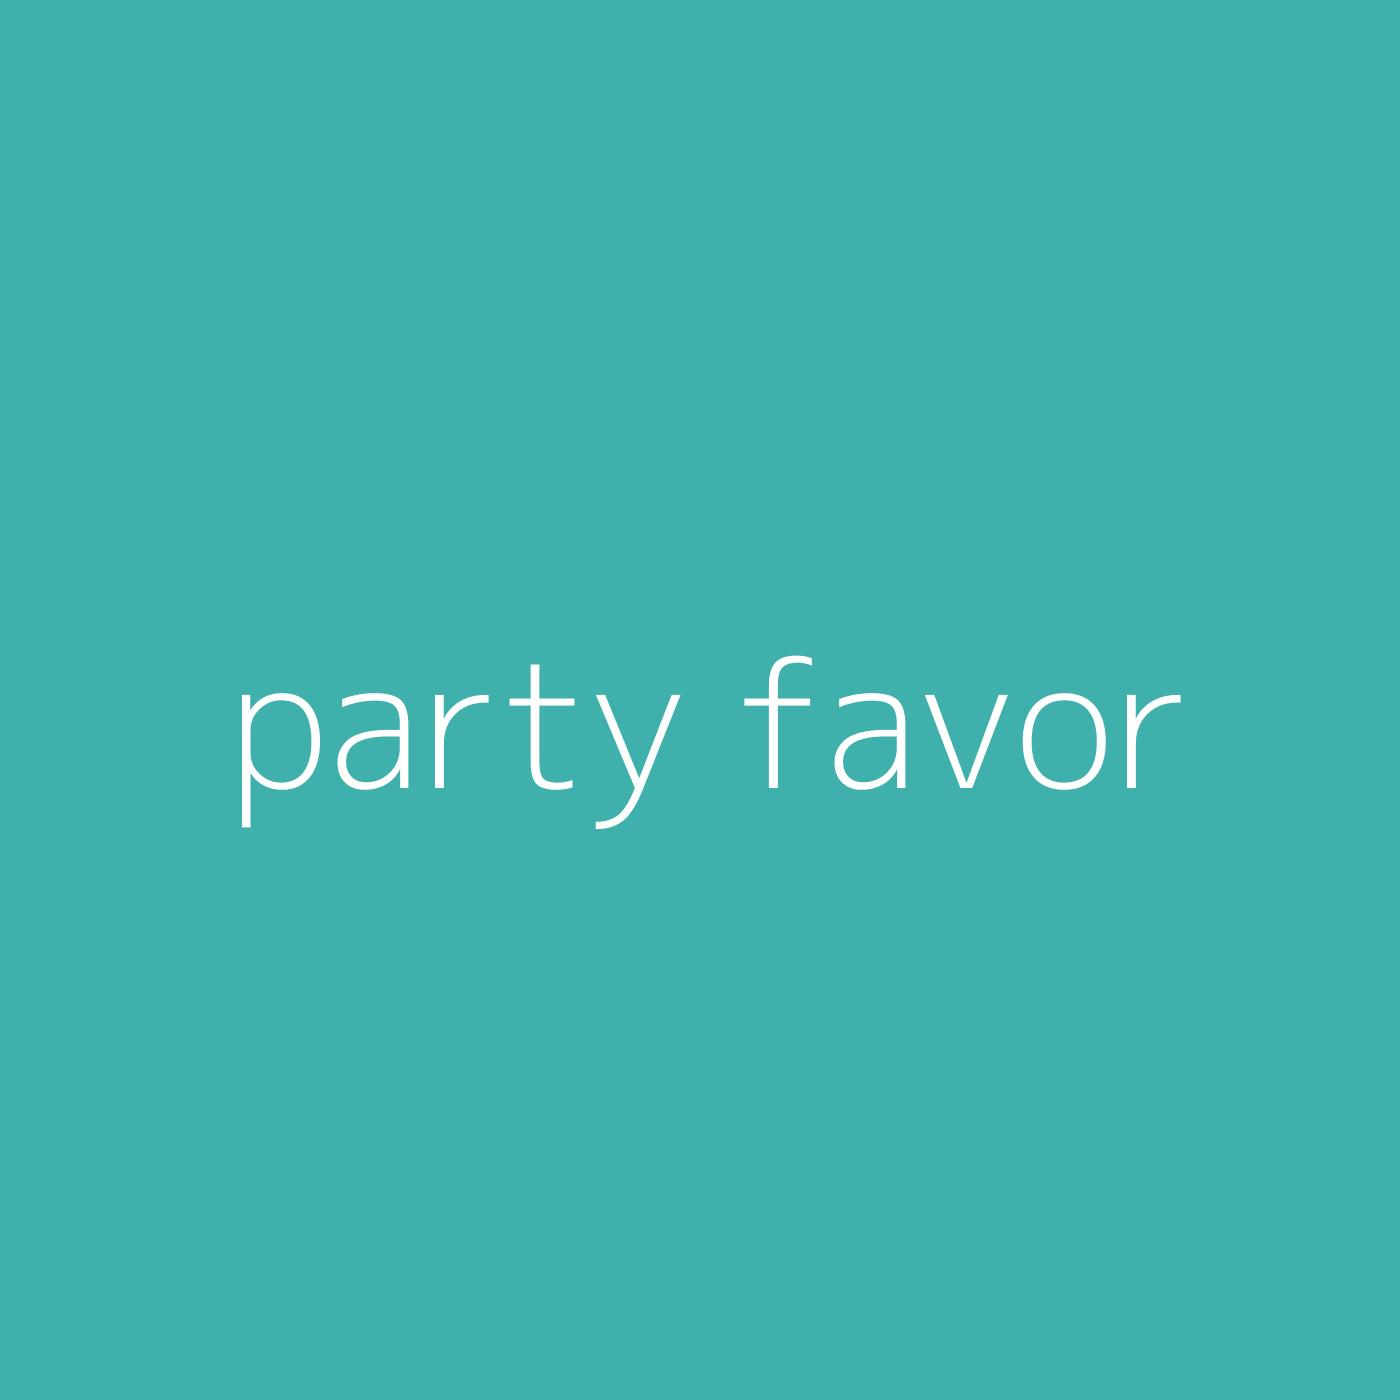 party favor – Billie Eilish